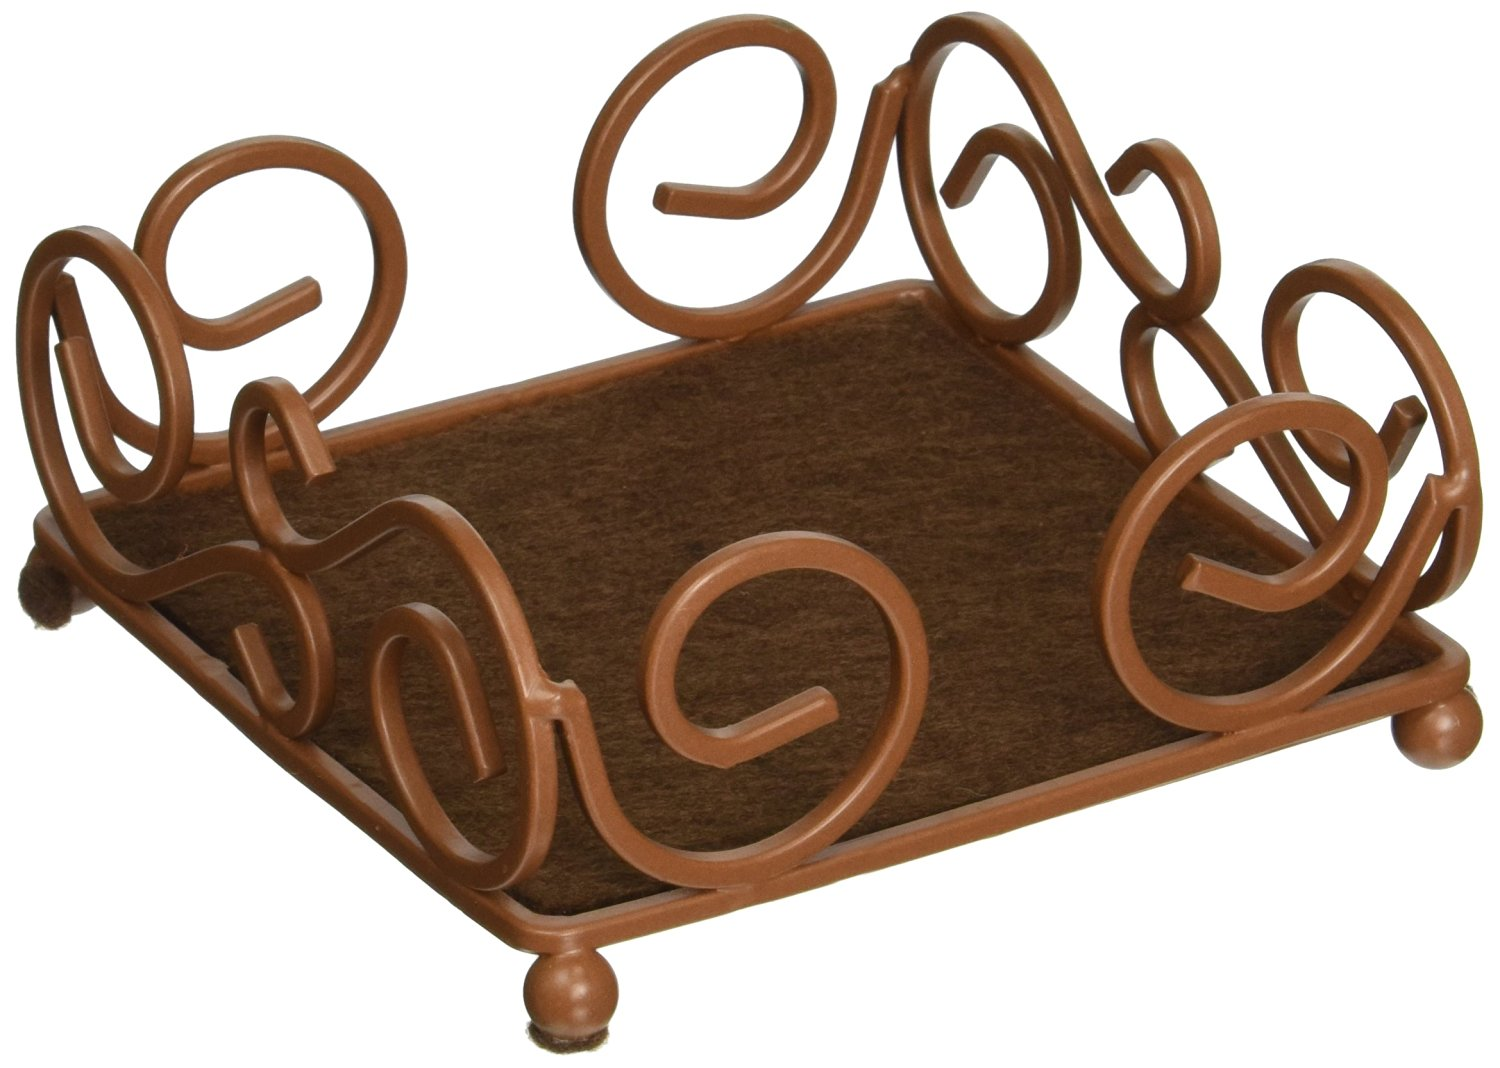 Thirstystone Square Scroll Brown Wrought Iron Coaster Holder for Thirstystone 4-Inch Square Travertine